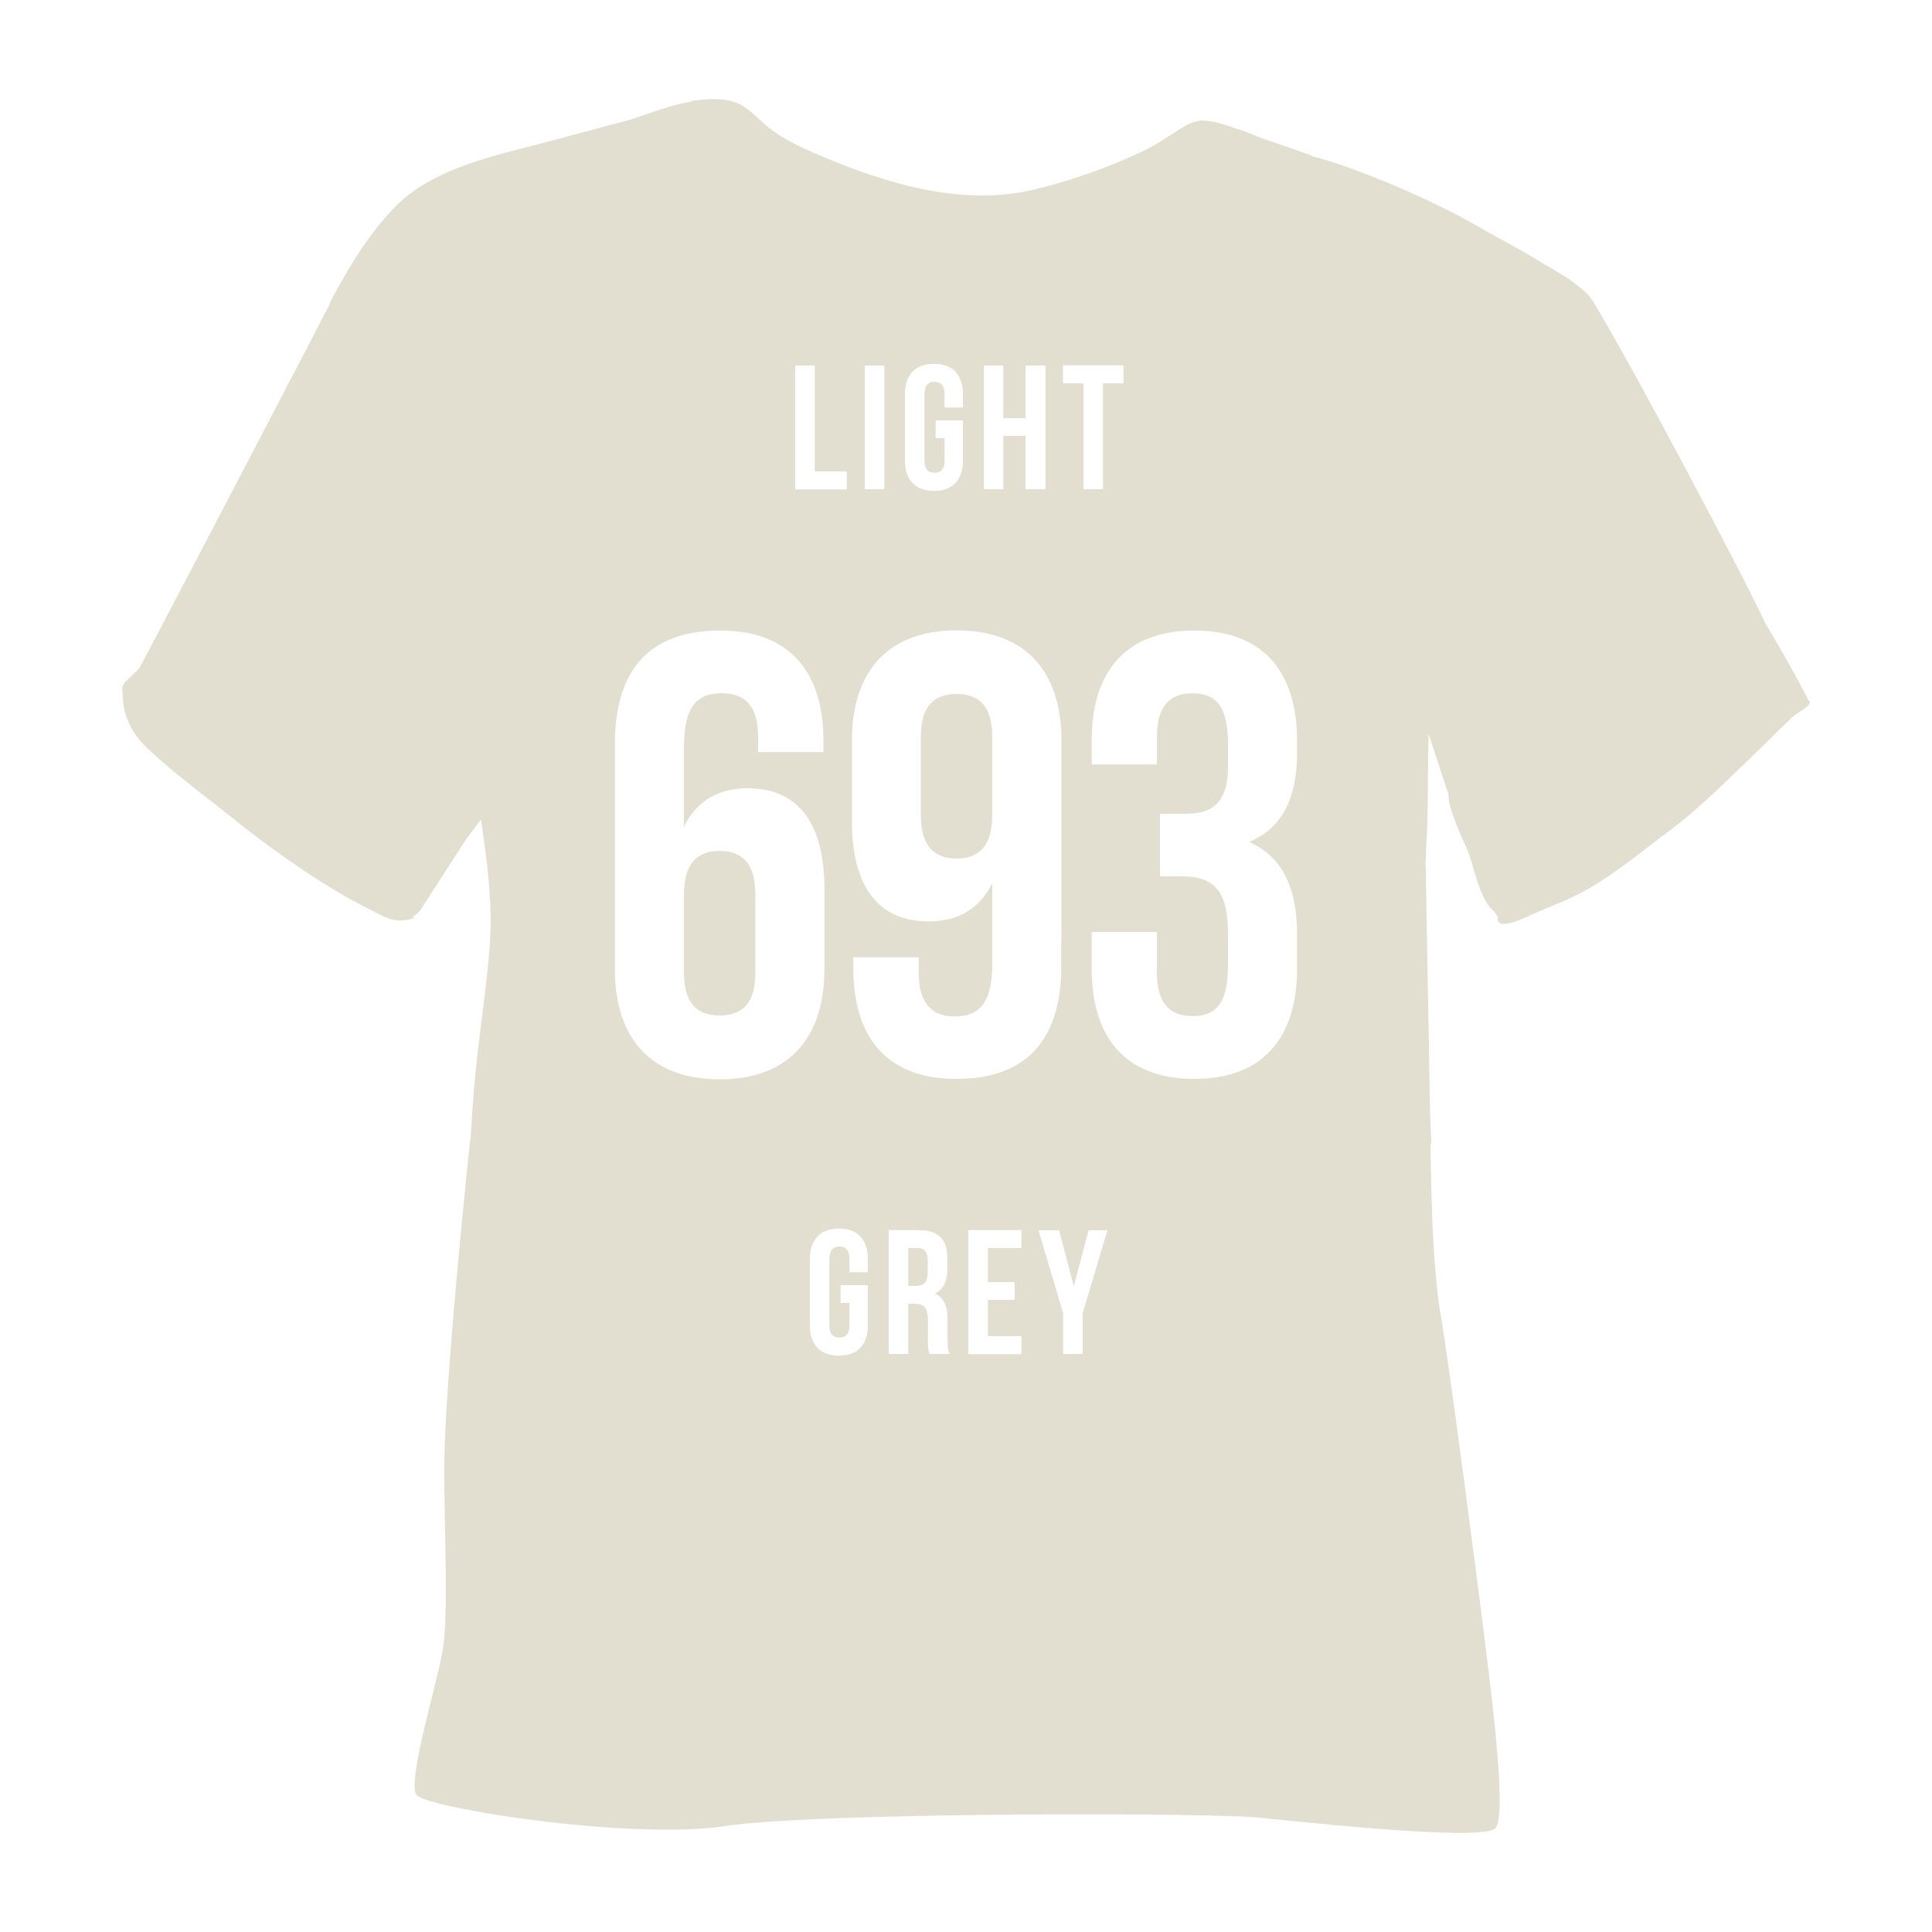 693 LIGHT GREY